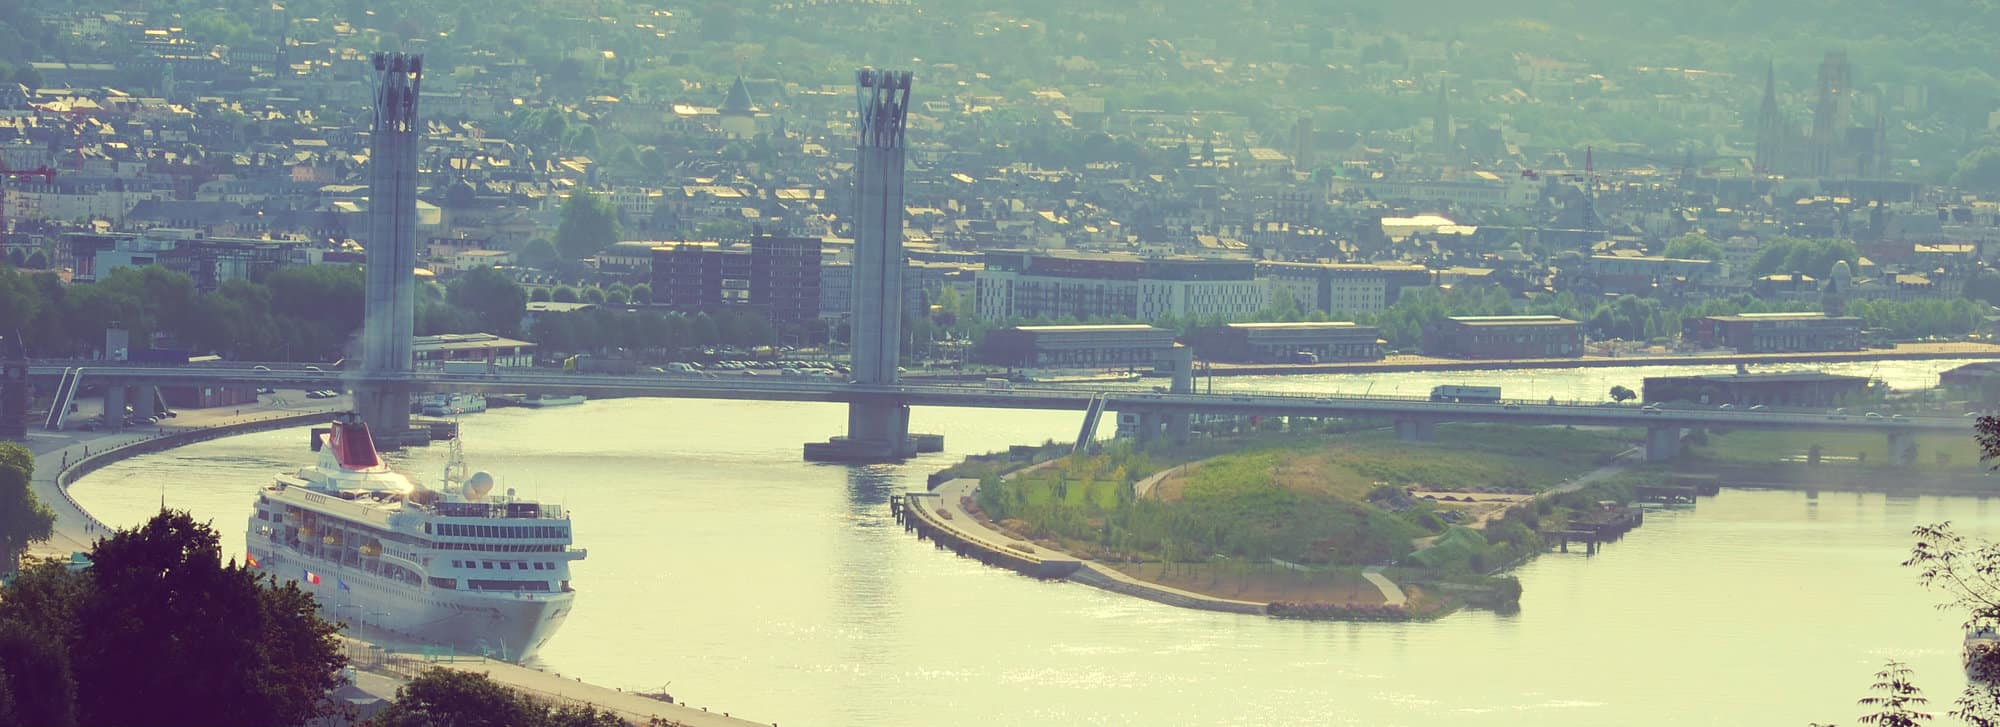 Rouen Port De Paris normandie